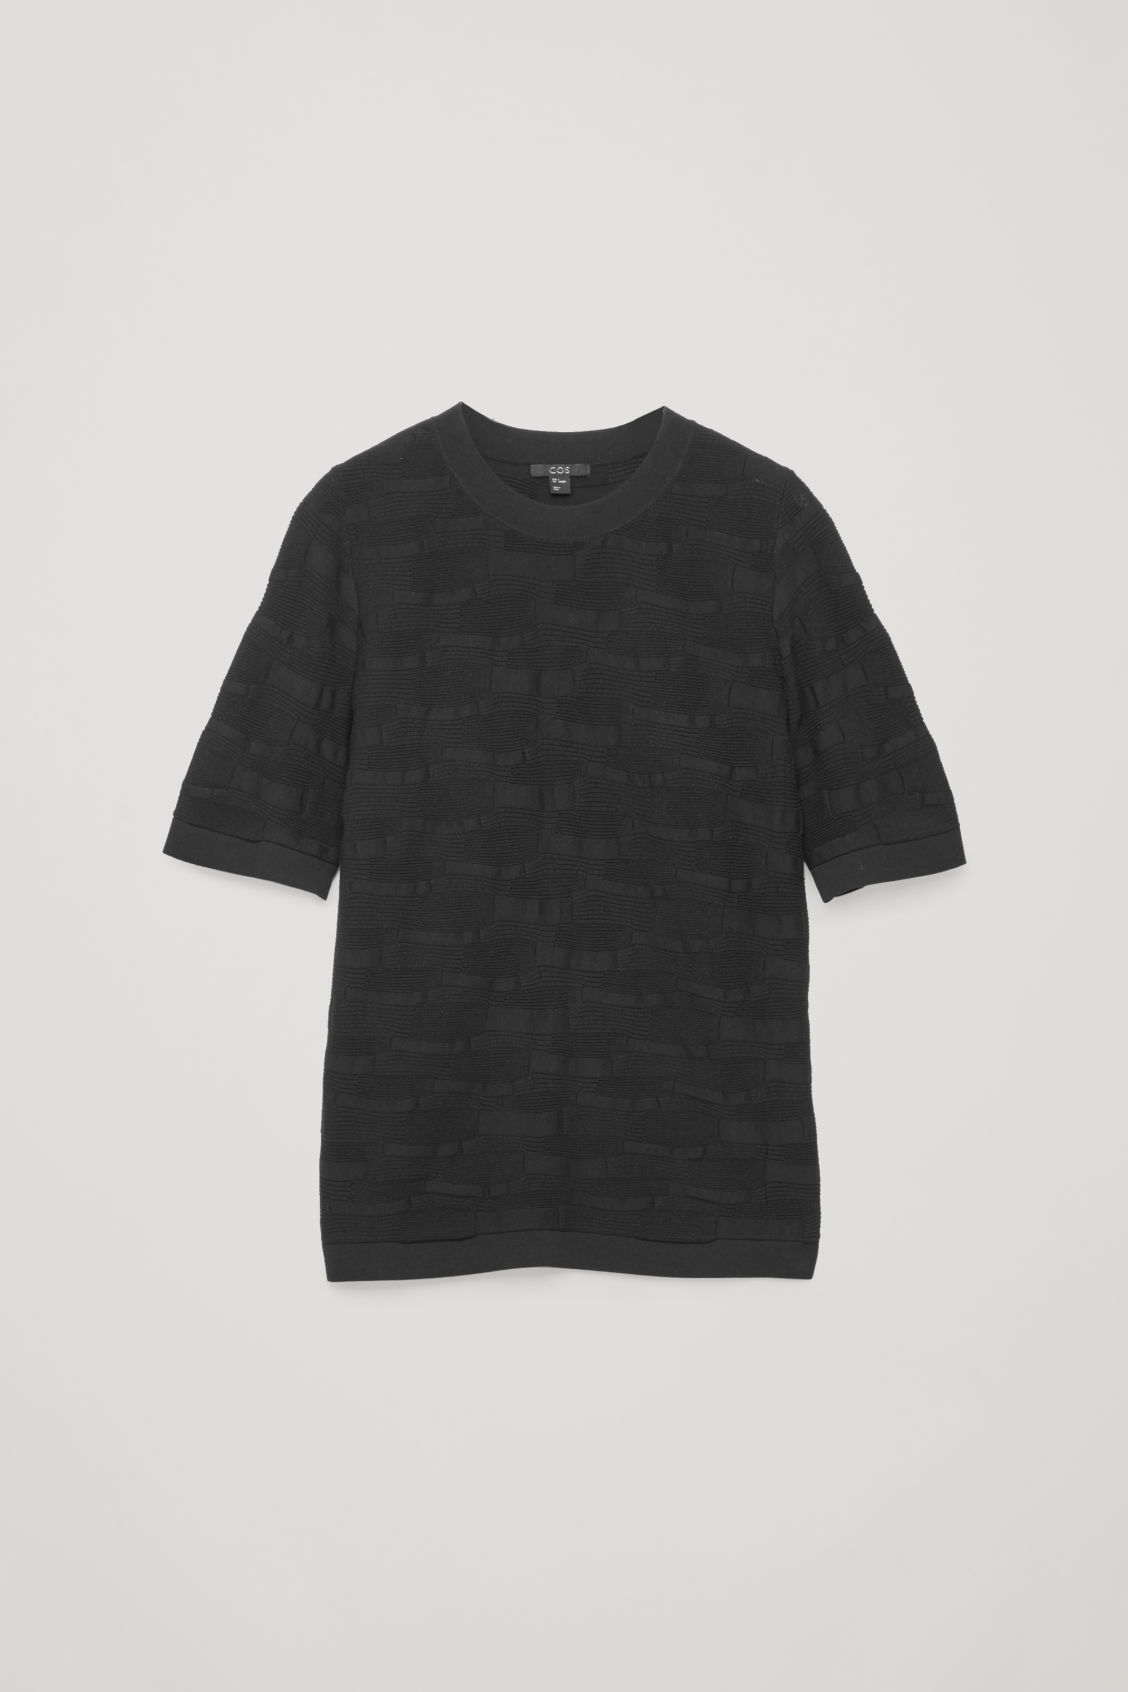 Front image of Cos irregular-stitch knit top in black